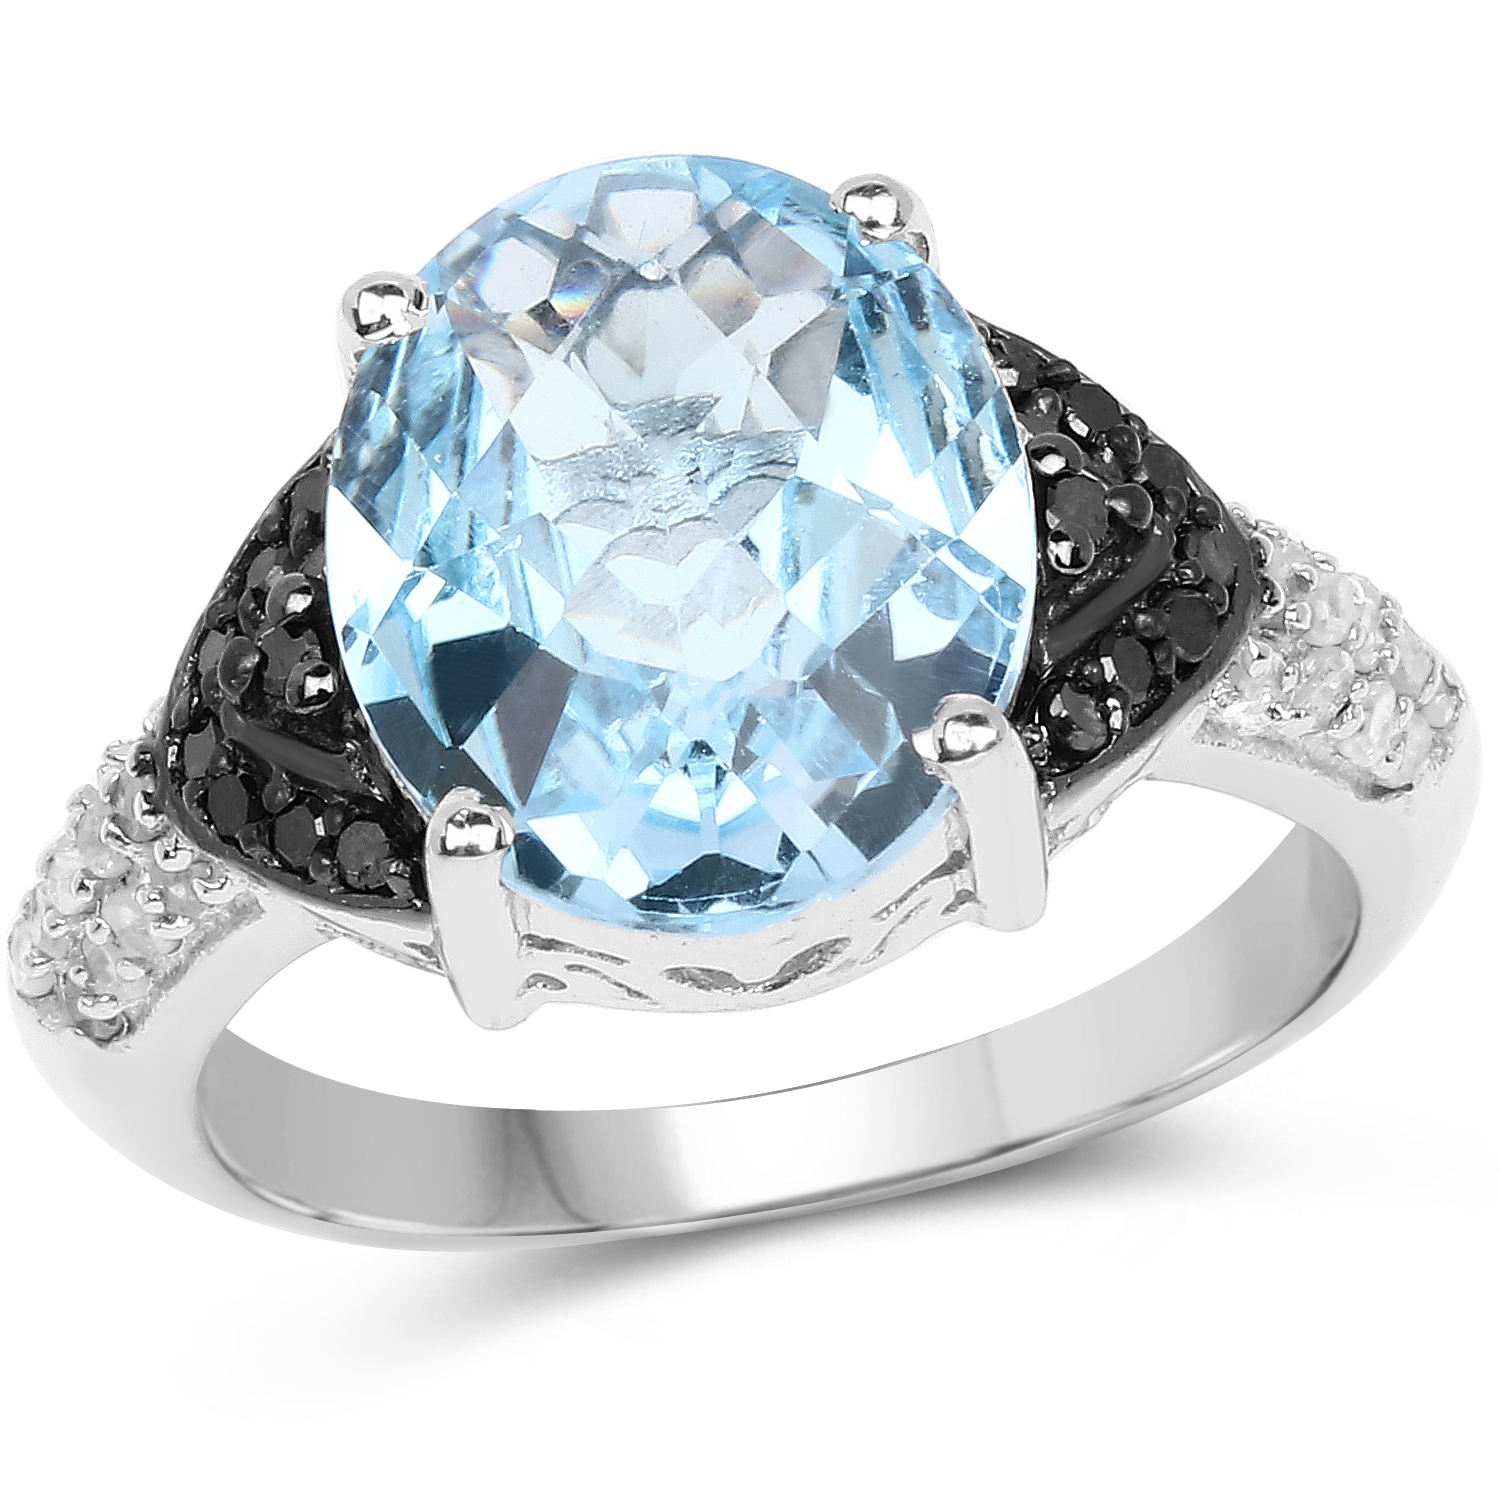 Genuine Swiss Blue Topaz, Black Diamond and White Topaz Ring in Sterling Silver - Size 9.00